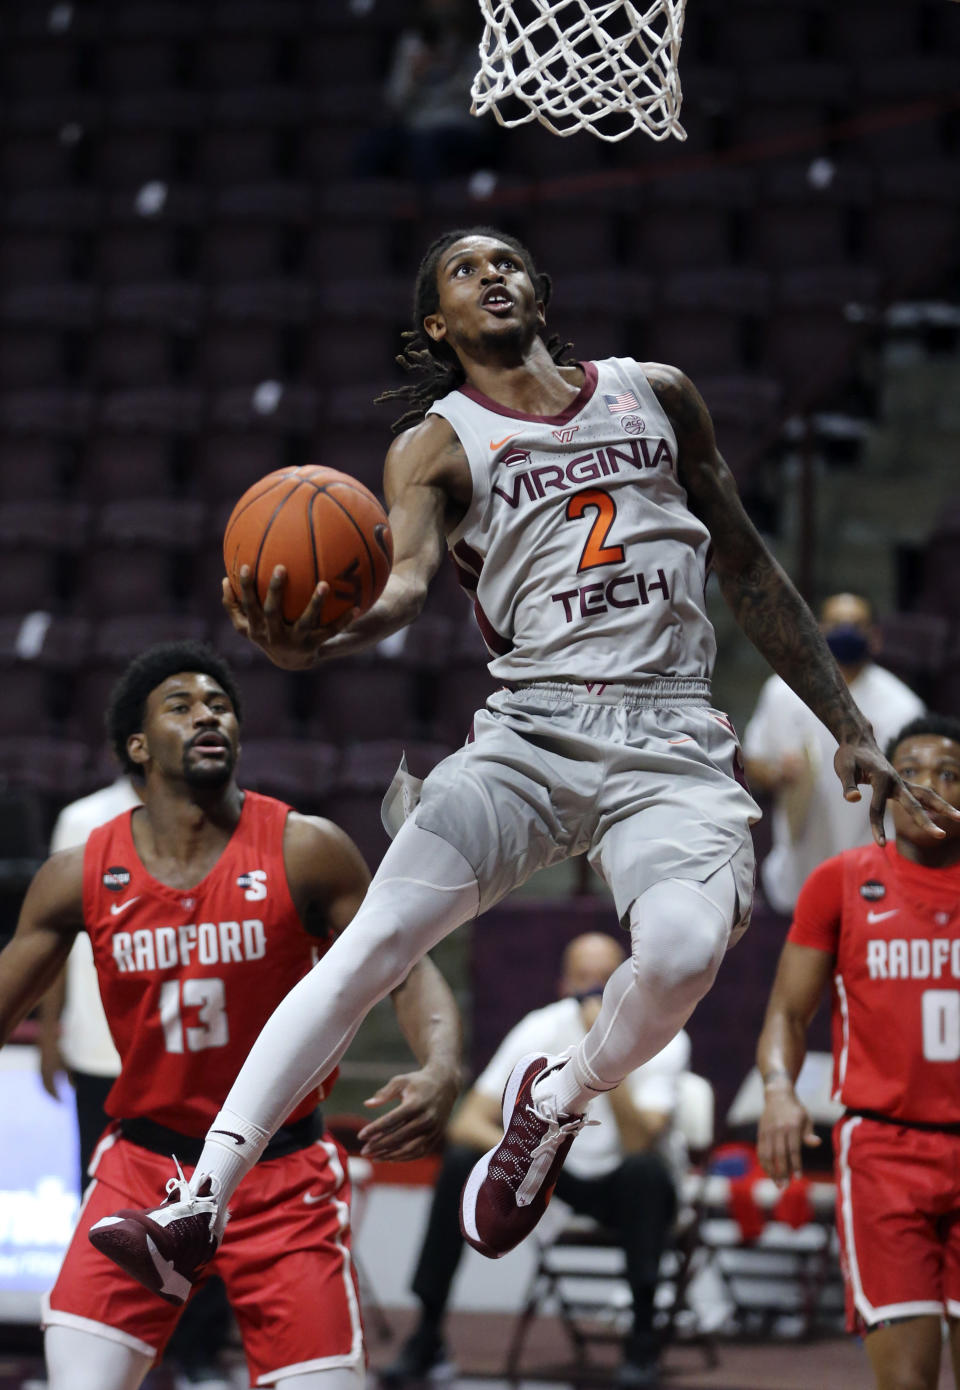 Virginia Tech's Cartier Diarra (2) scores past Radford defenders Shaquan Jules (13) and Fah'Mir Ali (0) during first half of an NCAA college basketball game, Wednesday Nov. 25, 2020, in Blacksburg Va. (Matt Gentry/The Roanoke Times via AP)